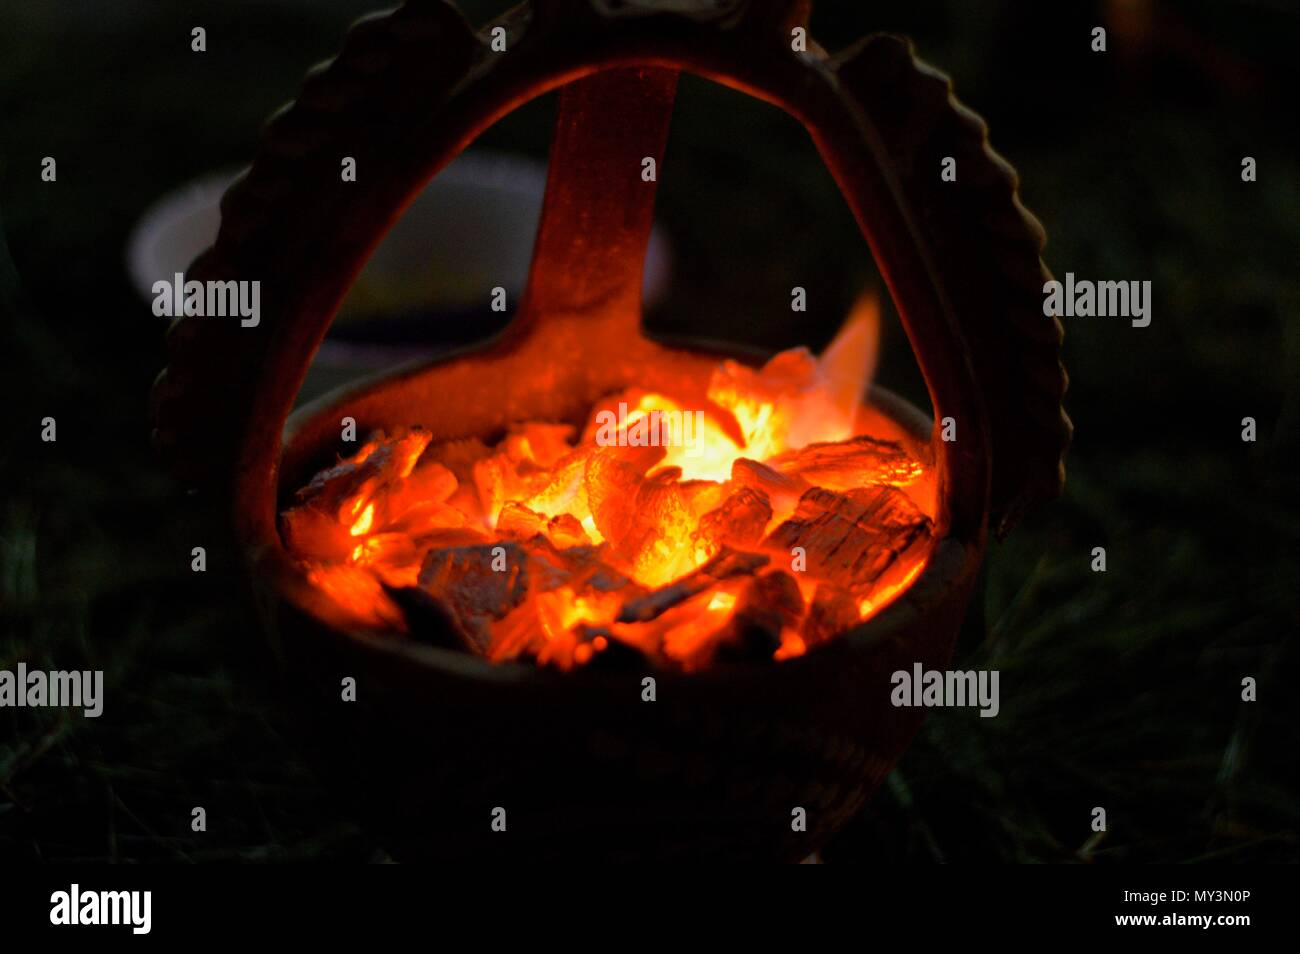 Incensory on Holy Week at Guatemala - Stock Image